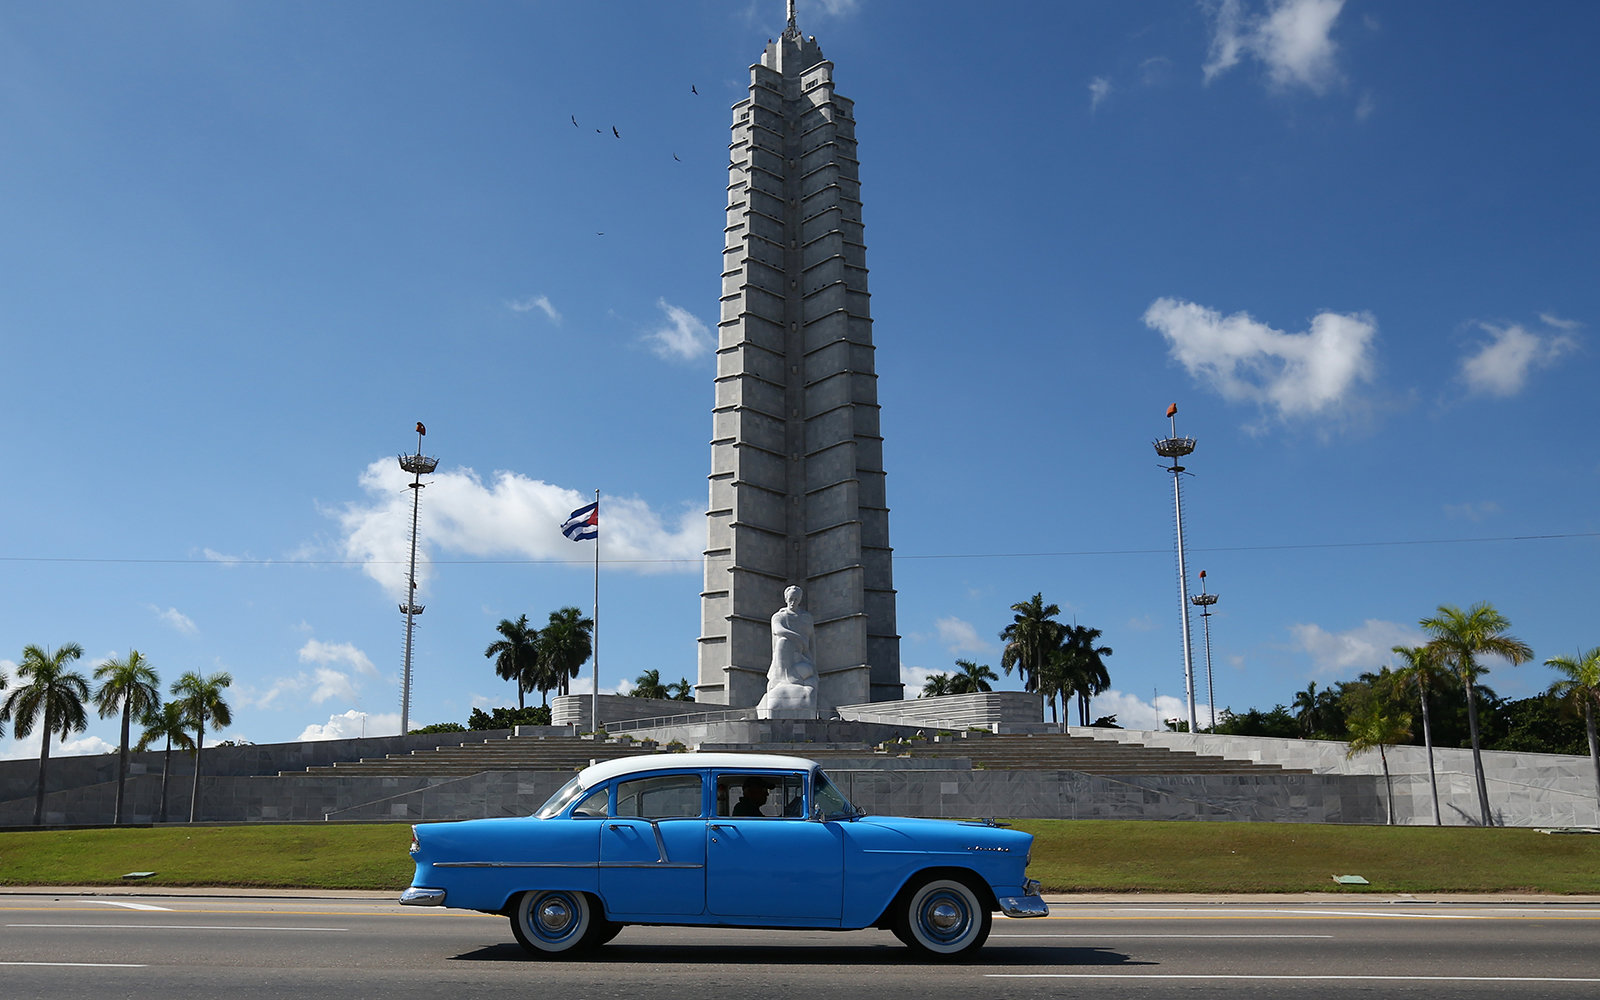 HAVANA, CUBA - SEPTEMBER 18: A vintage American car is driven past the Jose Marti Memorial in Revolution Square where Pope Francis will perform Mass during his visit to Havana, on September 18, 2015 in Havana, Cuba. Pope Francis is due to make a three day